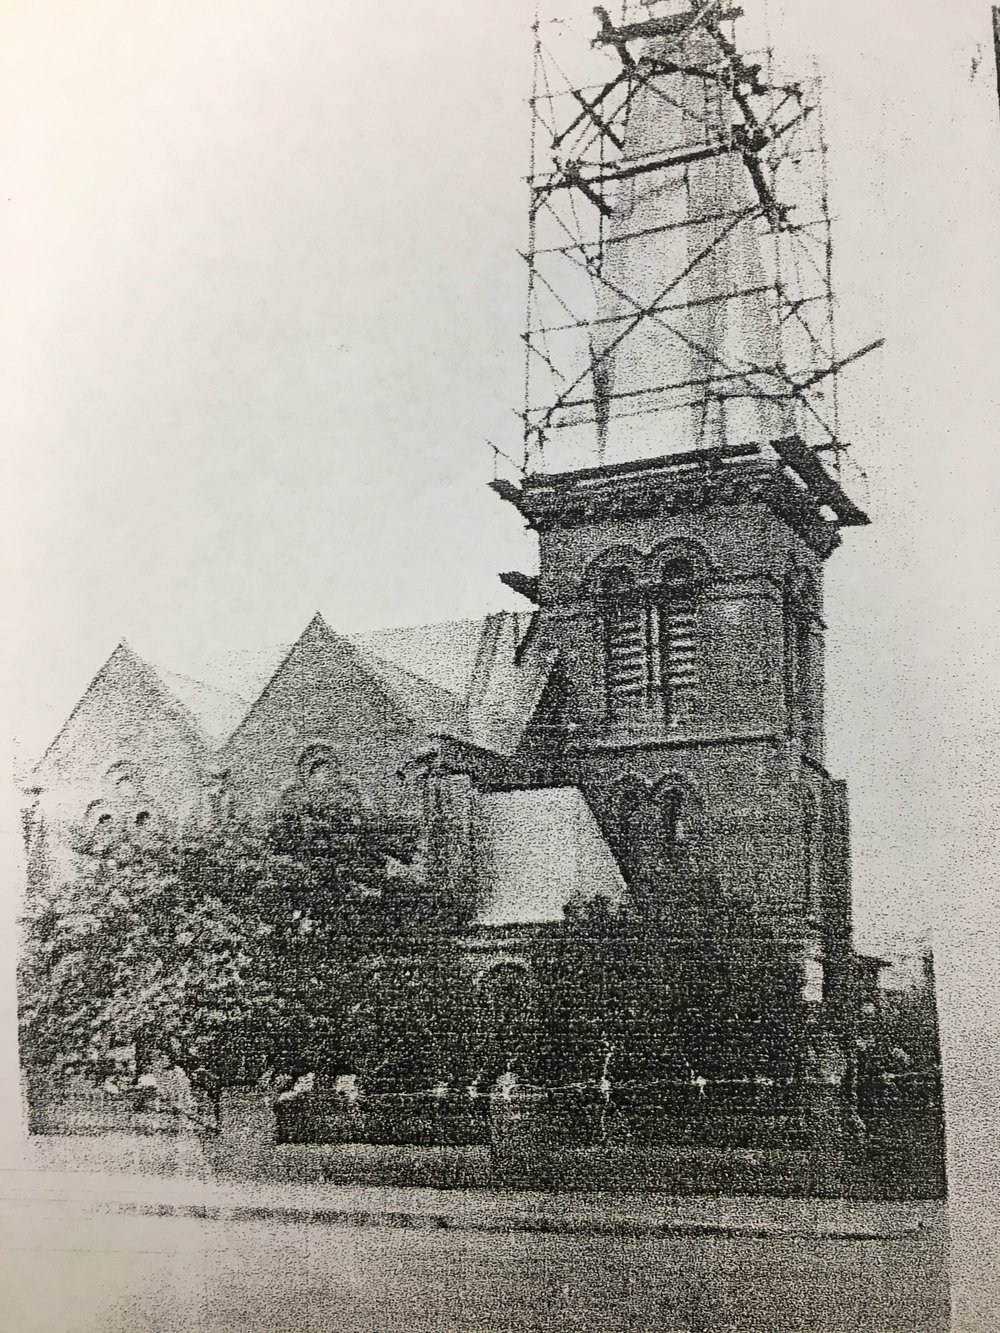 During construction of the Original Spire